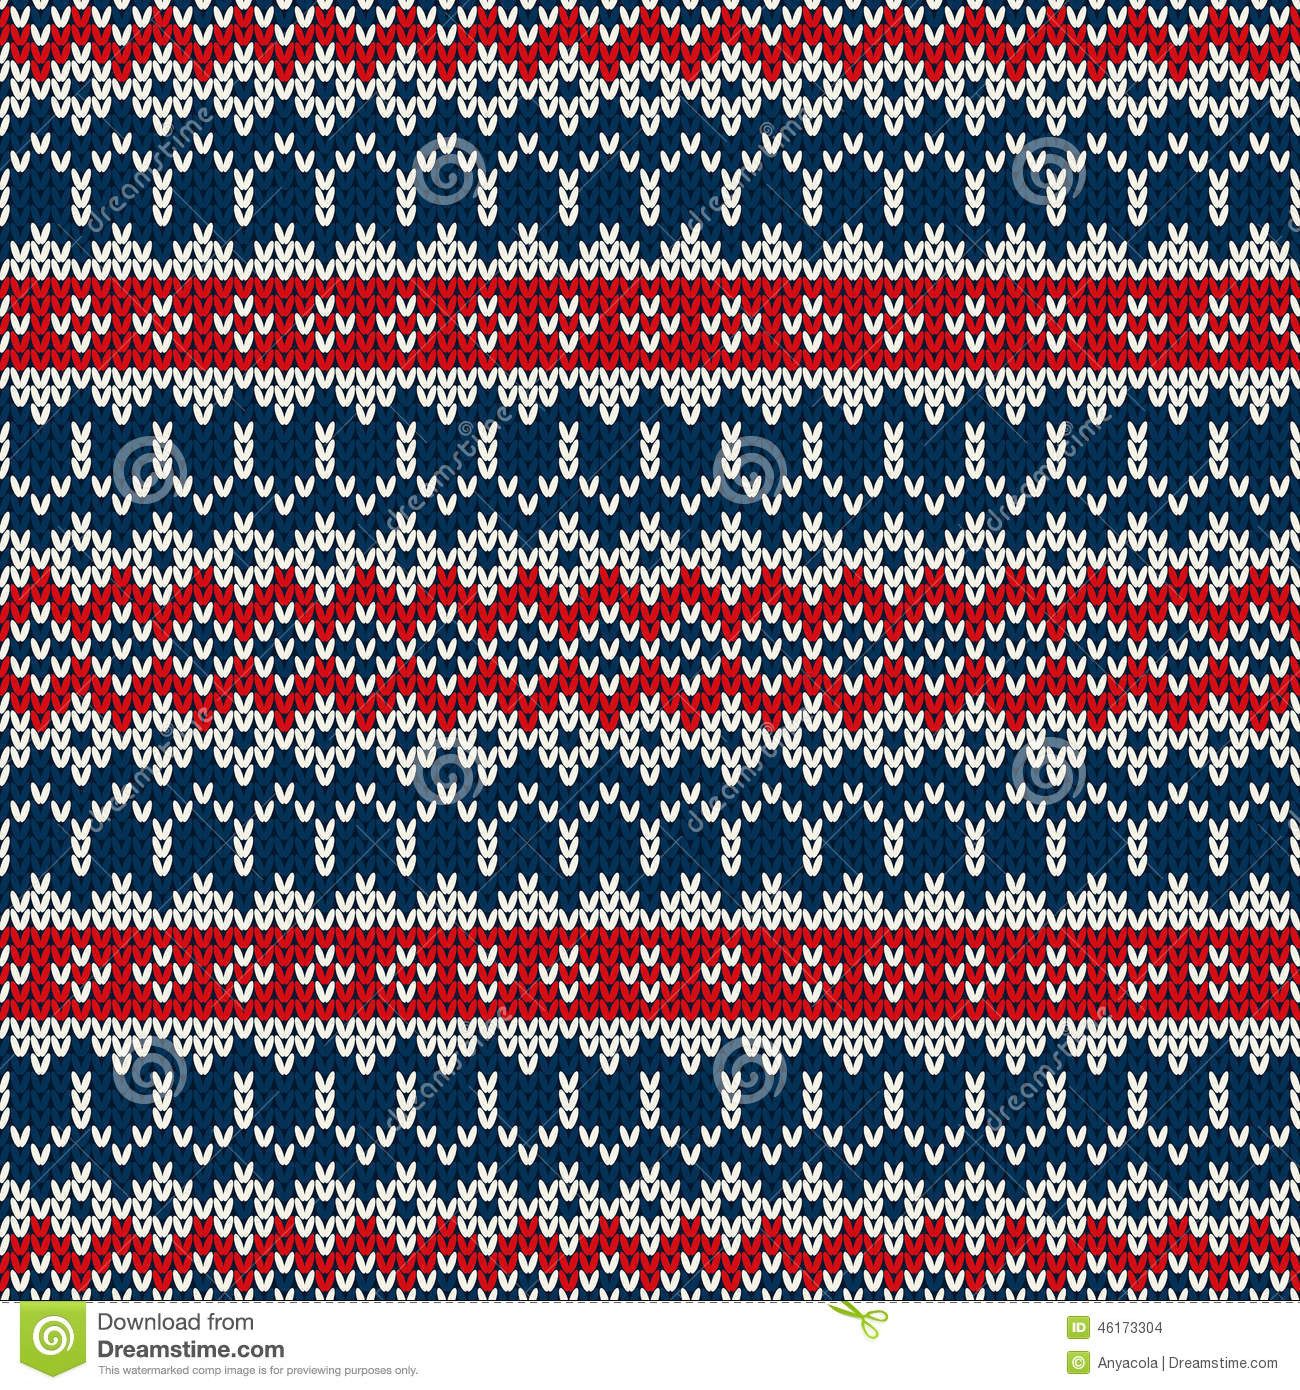 Awesome Winter Holiday Sweater Design In Traditional Fair isle Fair isle Pattern Of Top 42 Photos Fair isle Pattern